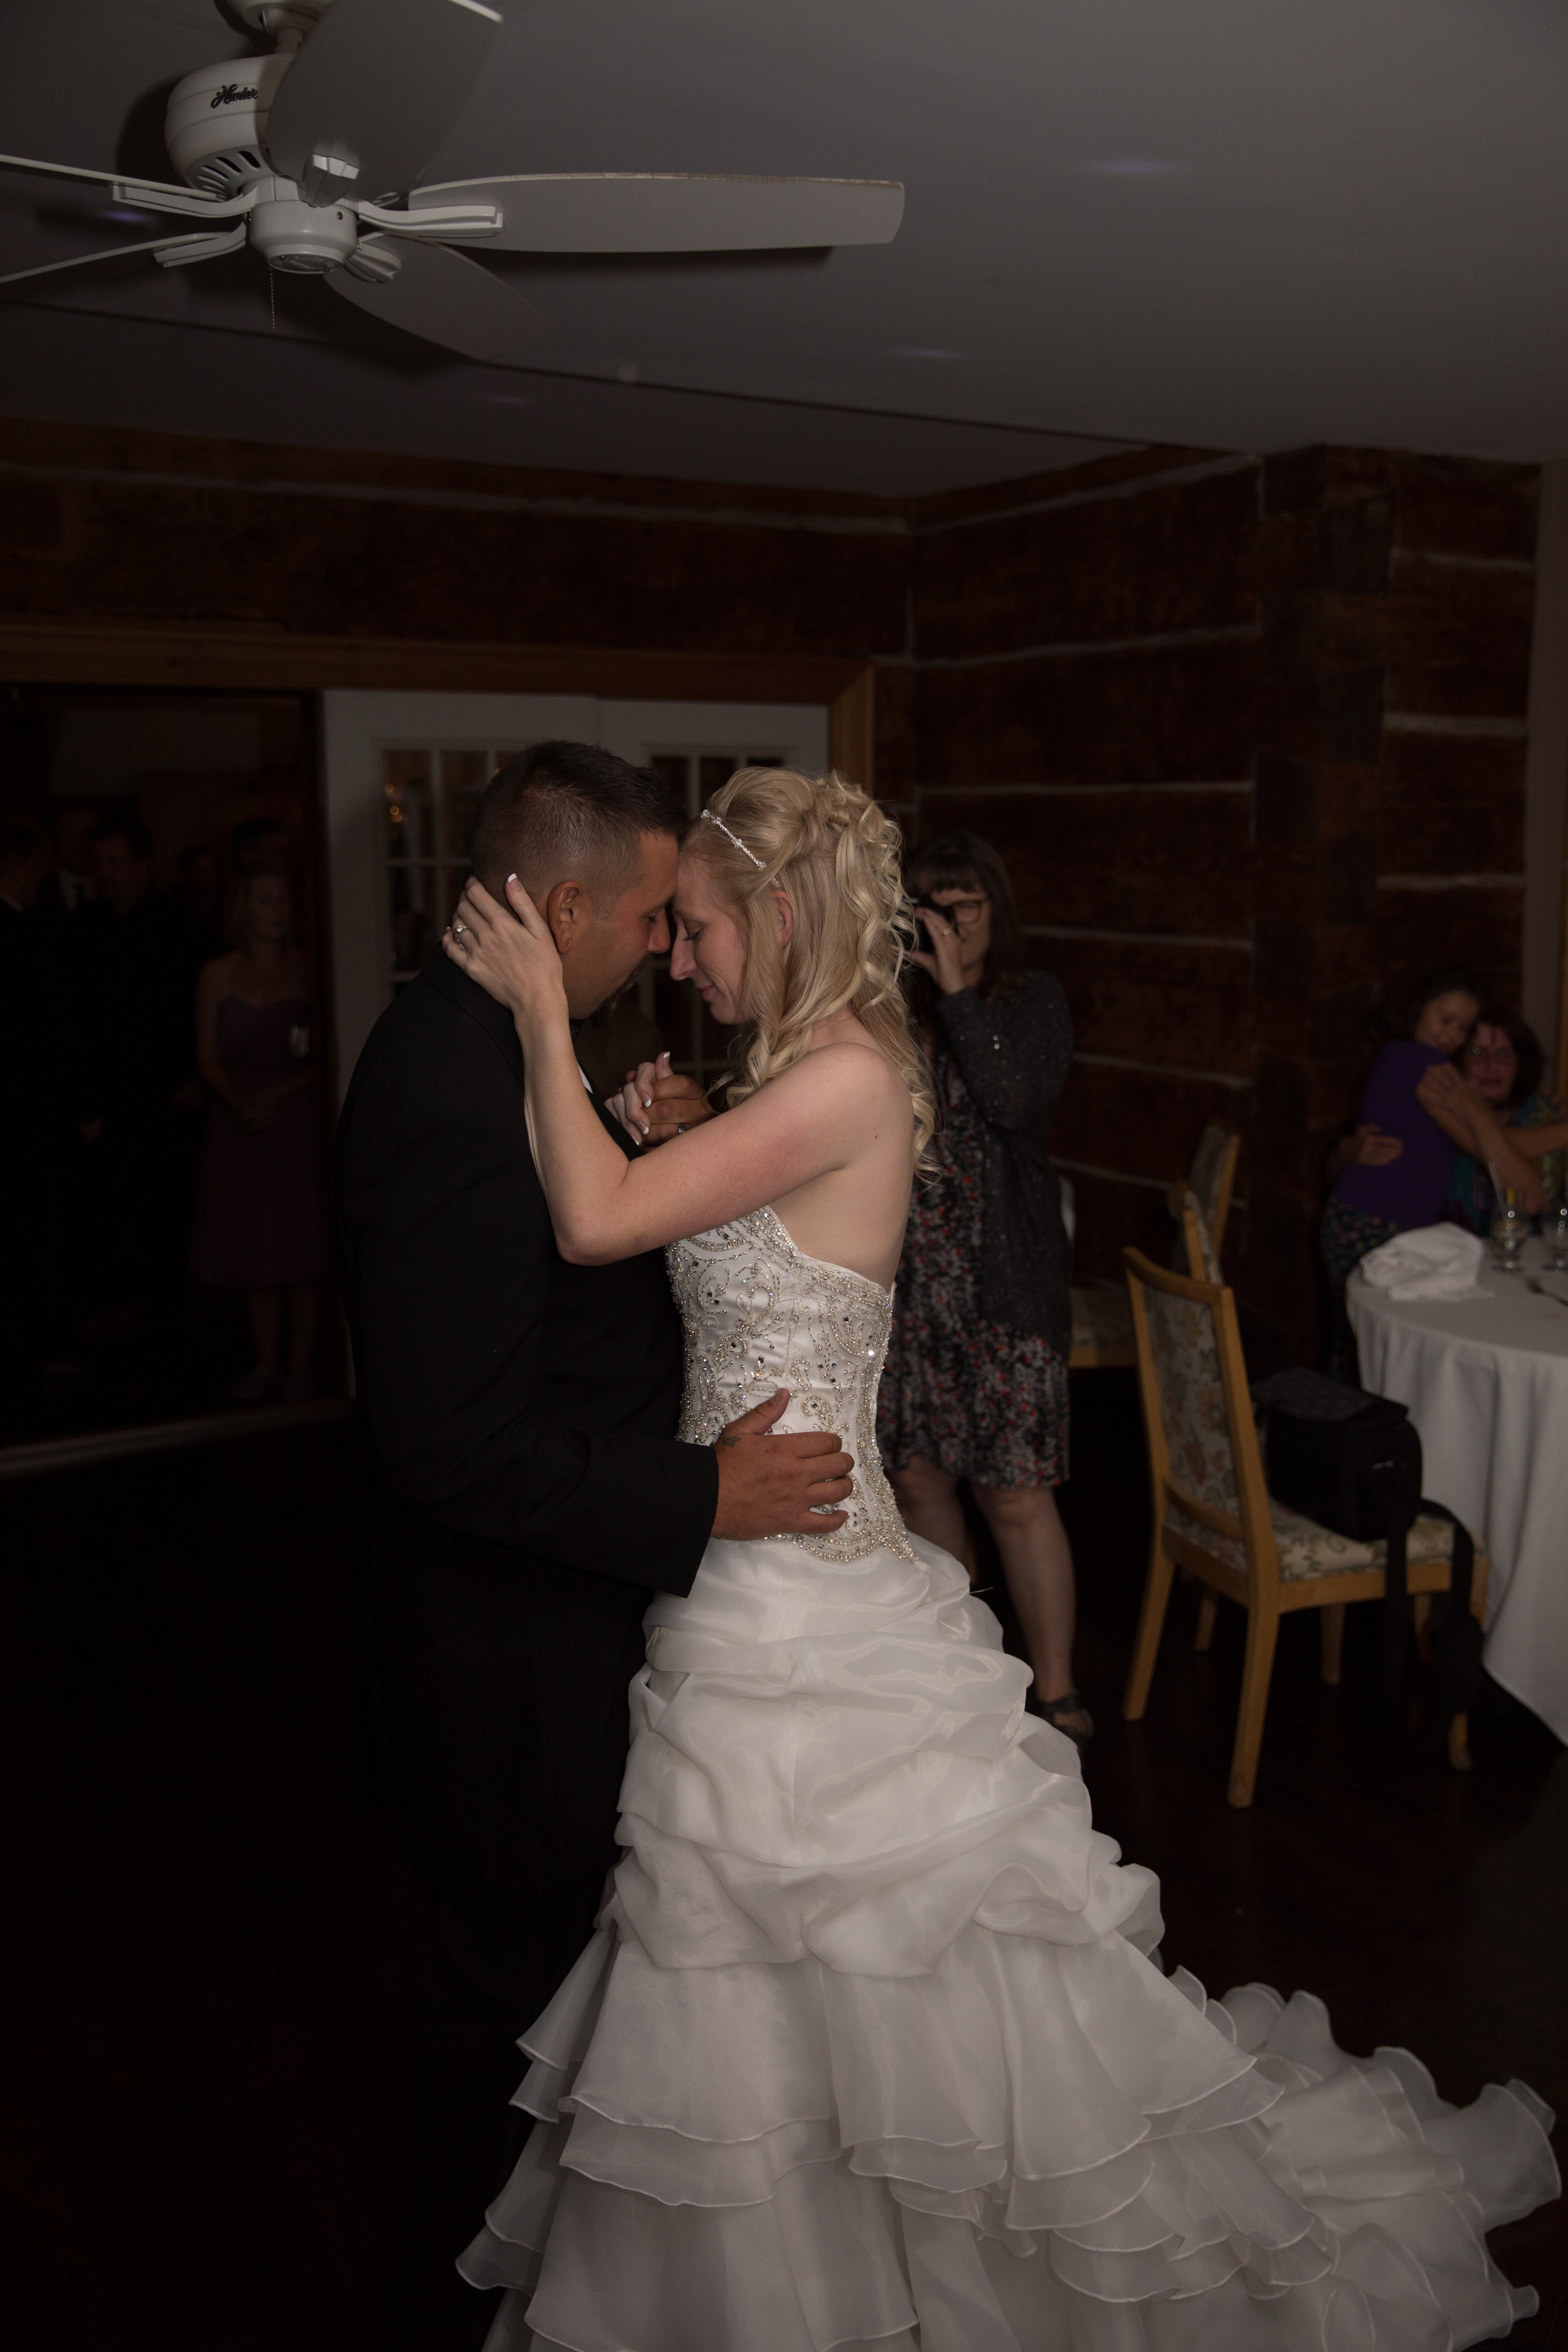 CrystalJessupwedding (390 of 400).jpg